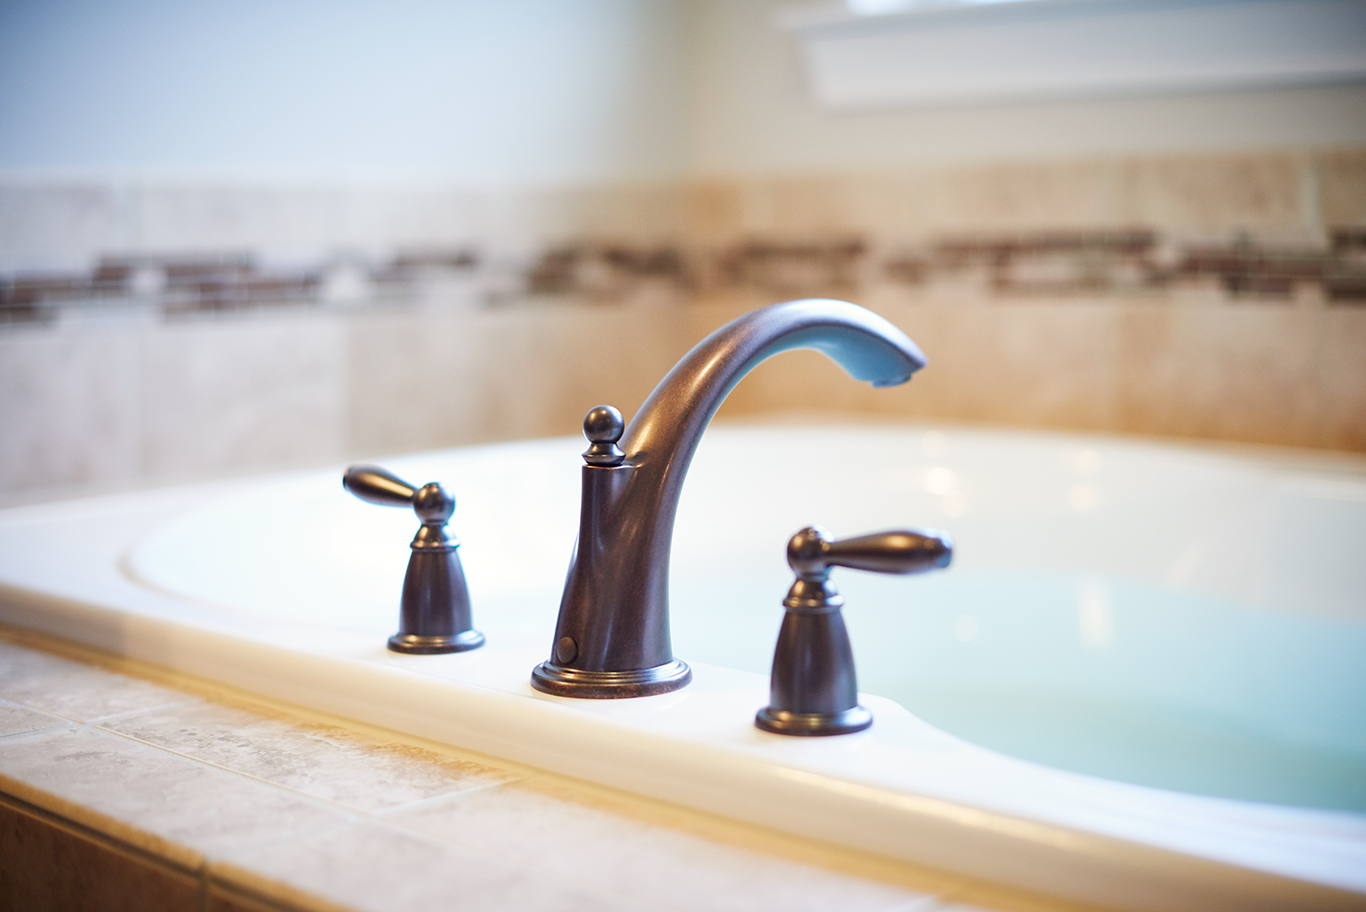 Escape To Your Private Oasis In A Signature Bath And Spa. Relax In Soaking  Tubs And Separate Shower Rooms. Vanities, Wall Mirrors, Tile, Marble,  Lighting, ...